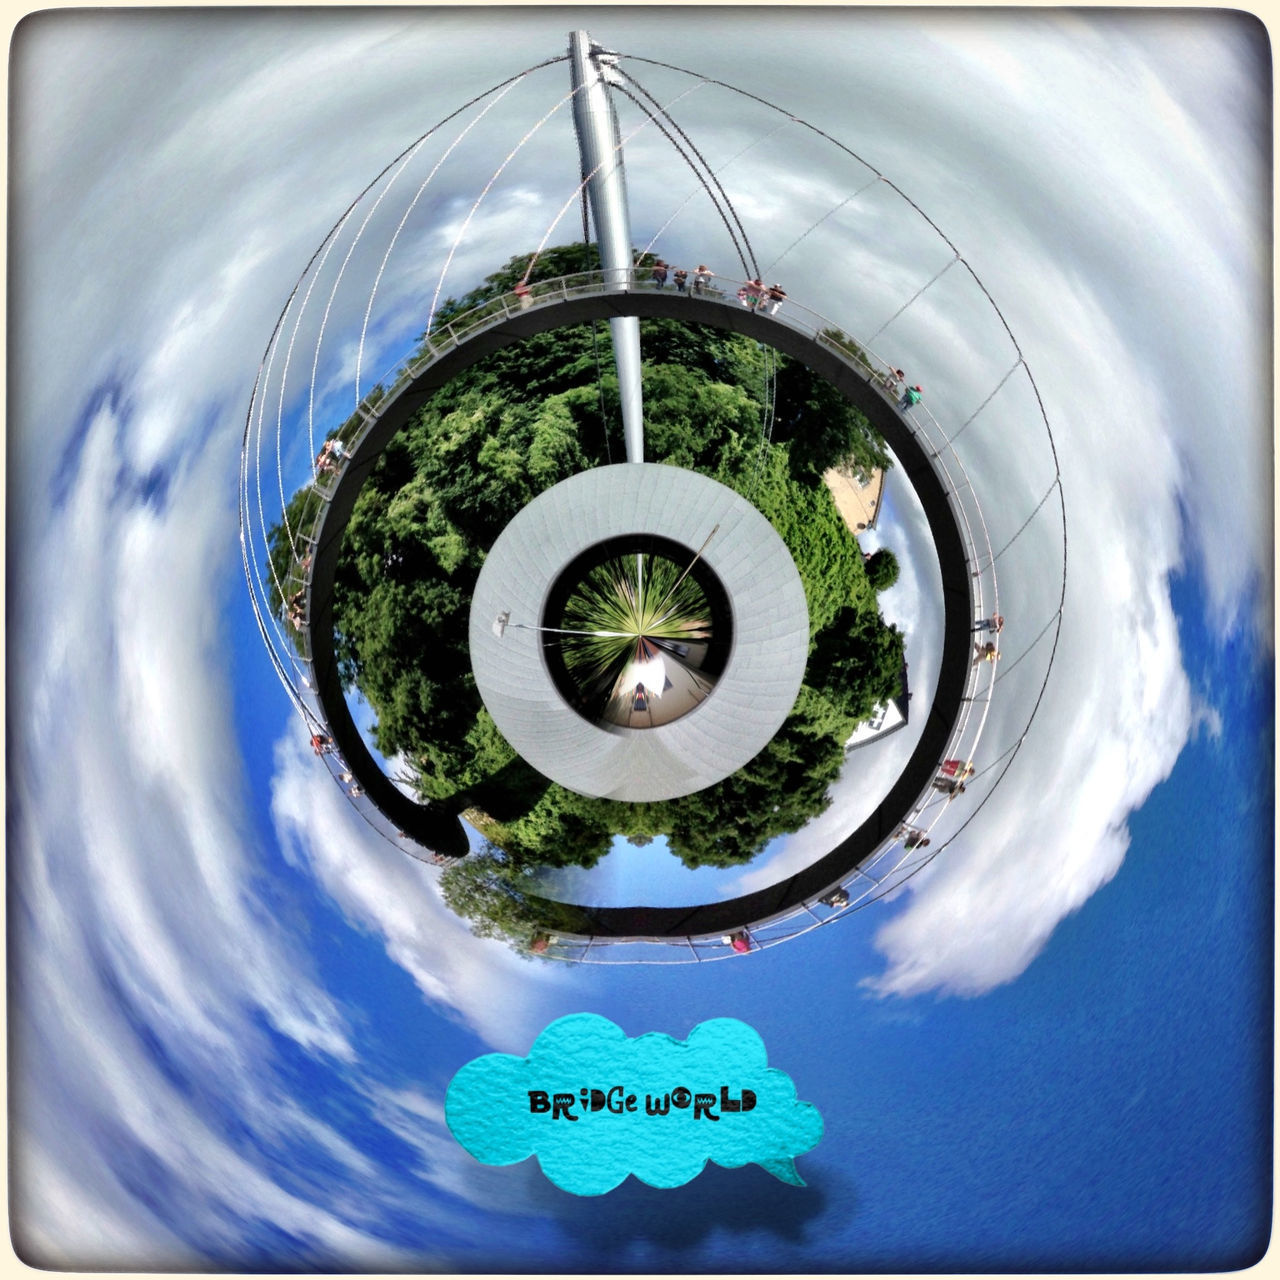 Tinyplanet Tiny Planet Tinyworld Roll World Tinyplanets Tinyplanetfx IPhoneography Iphoneonly IPhone Edited Bridge